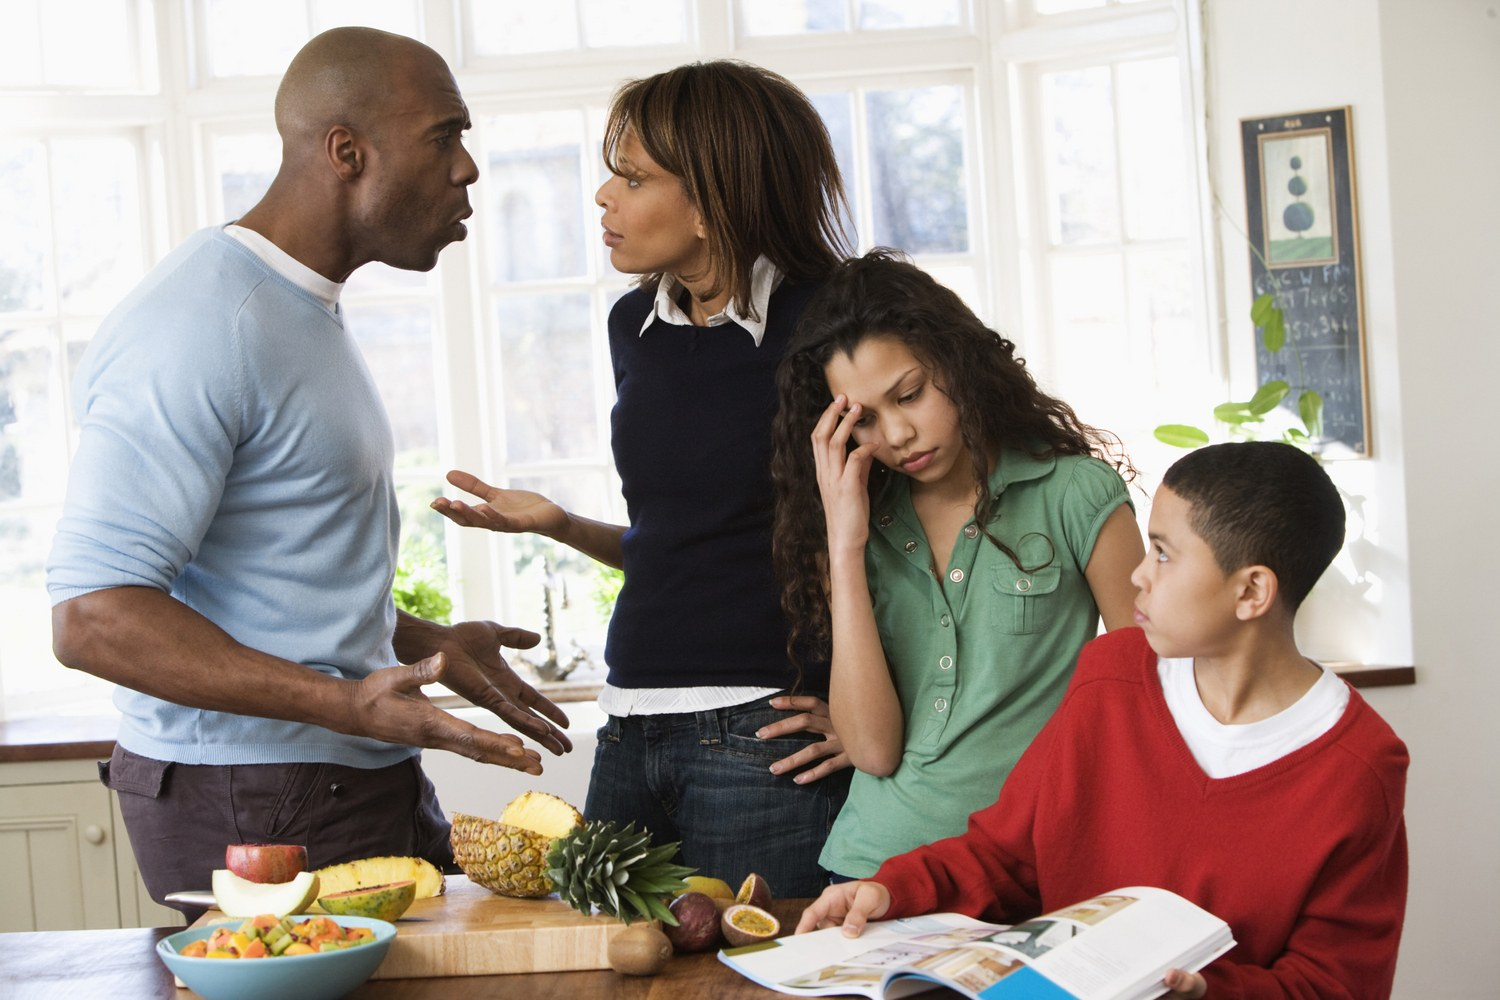 Family relationships and children: how to avoid conflicts